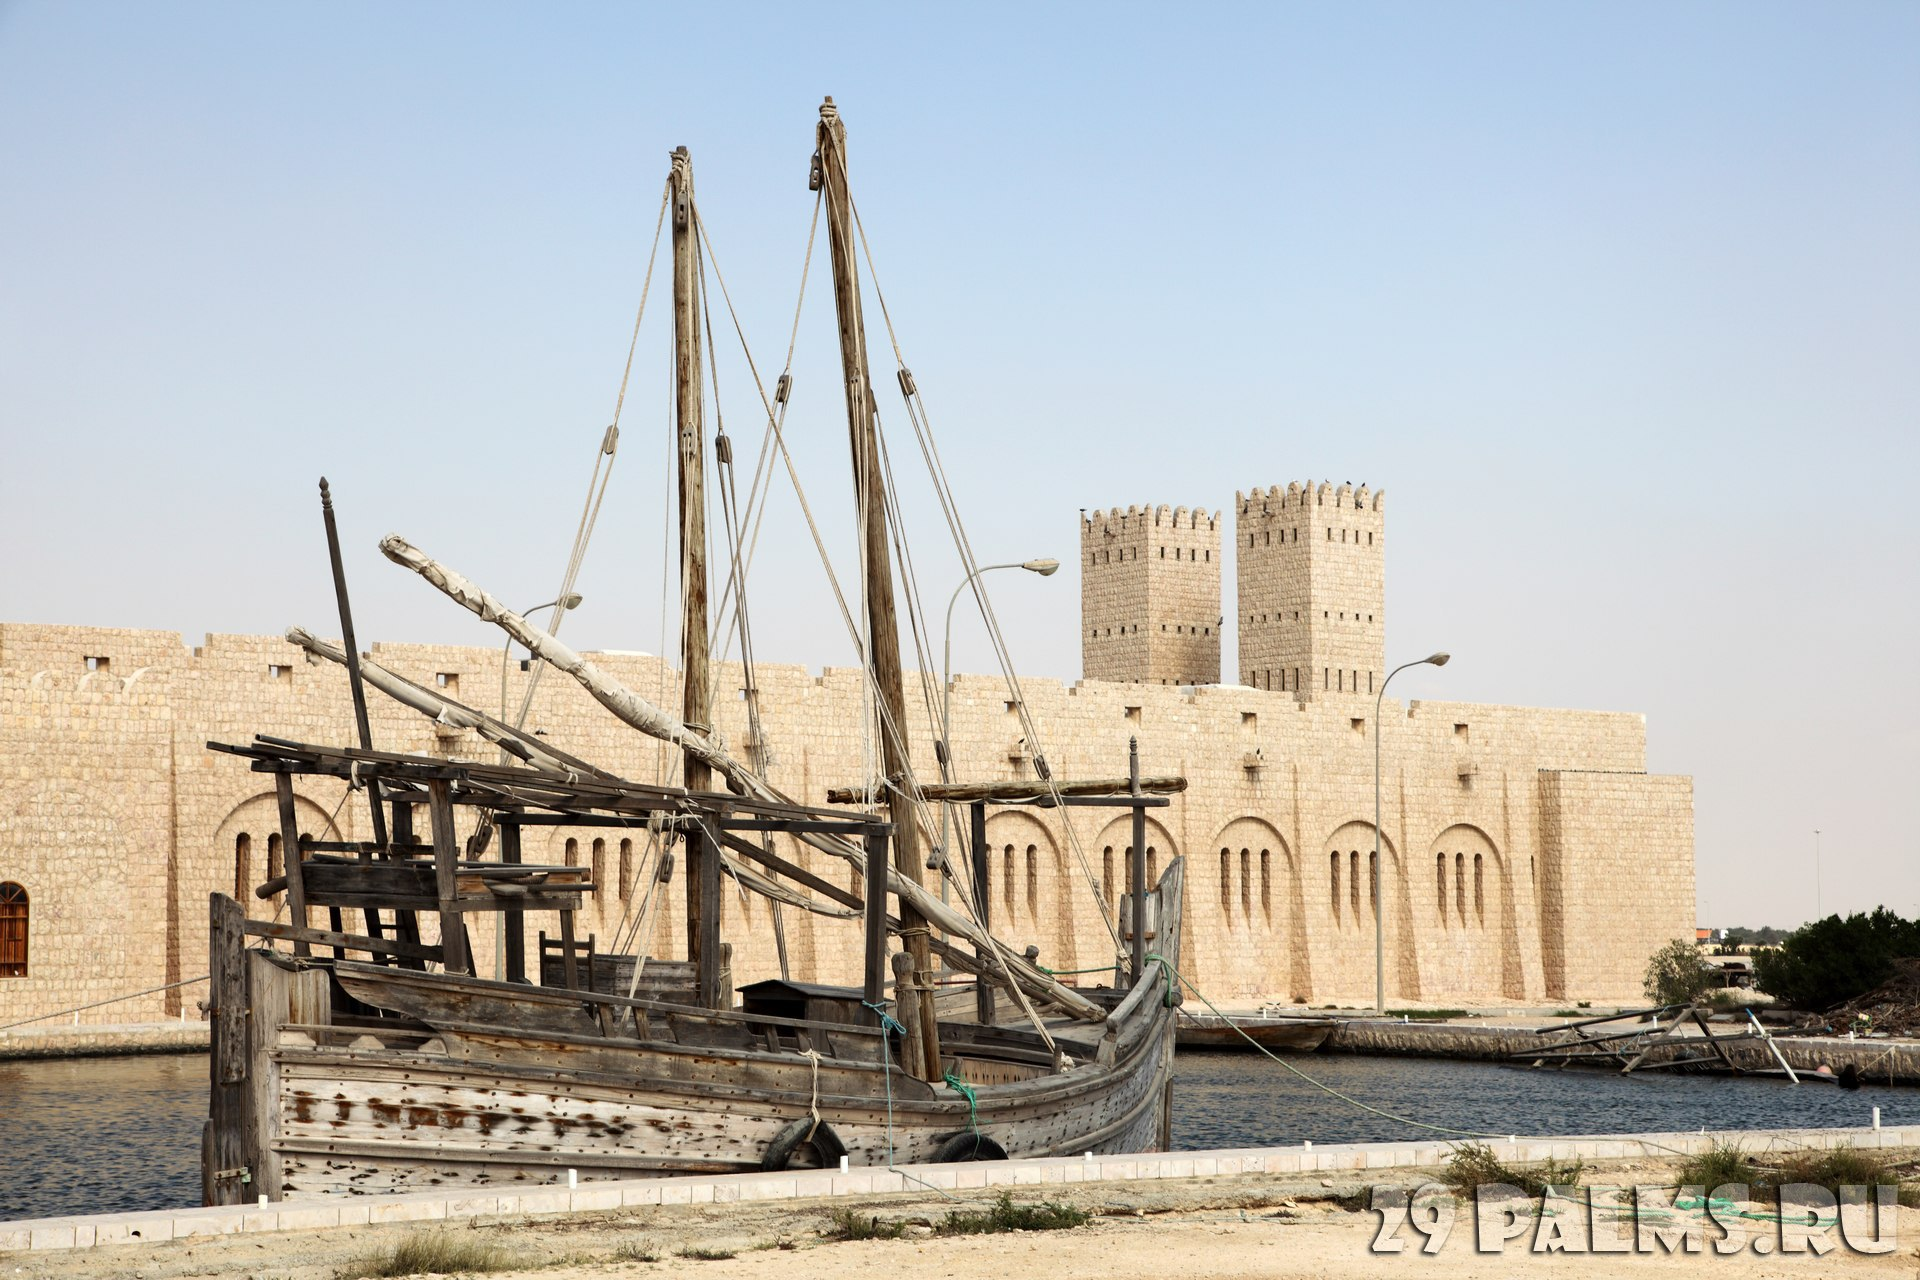 Клуб путешествий Павла Аксенова. Катар. Музей шейха Фейсала. Sheikh Faisal Museum. Qatar. Фото philipus - Depositphotos